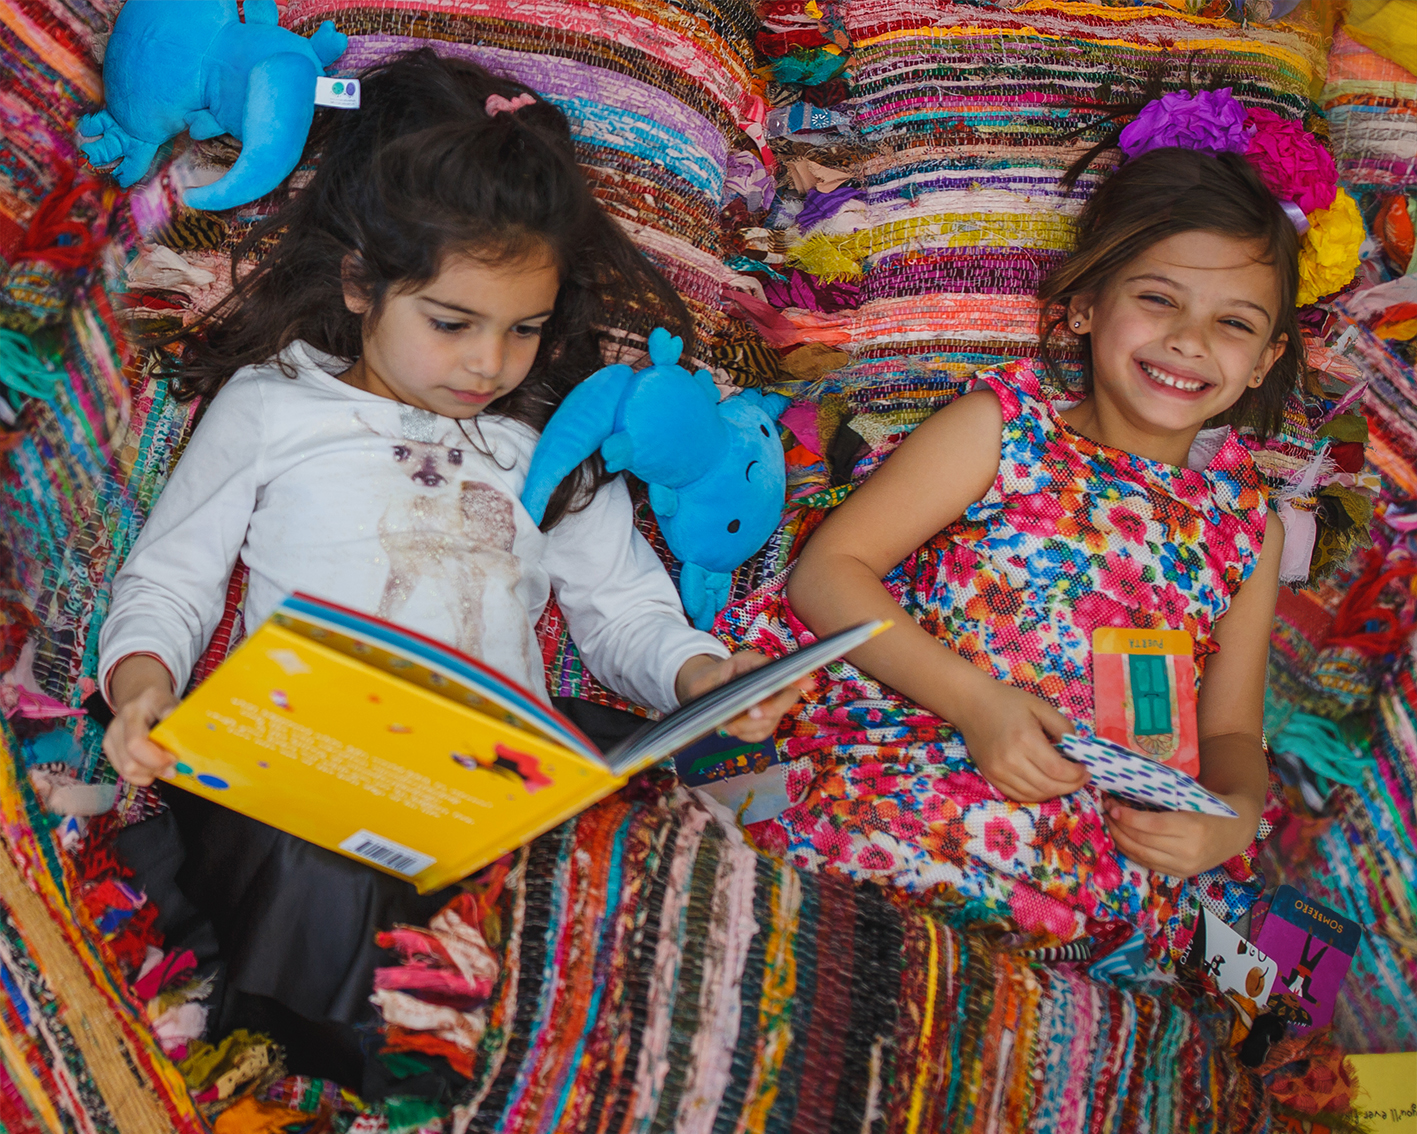 worldwide_buddies_story_box_mexico_reading_book_smiles.jpg